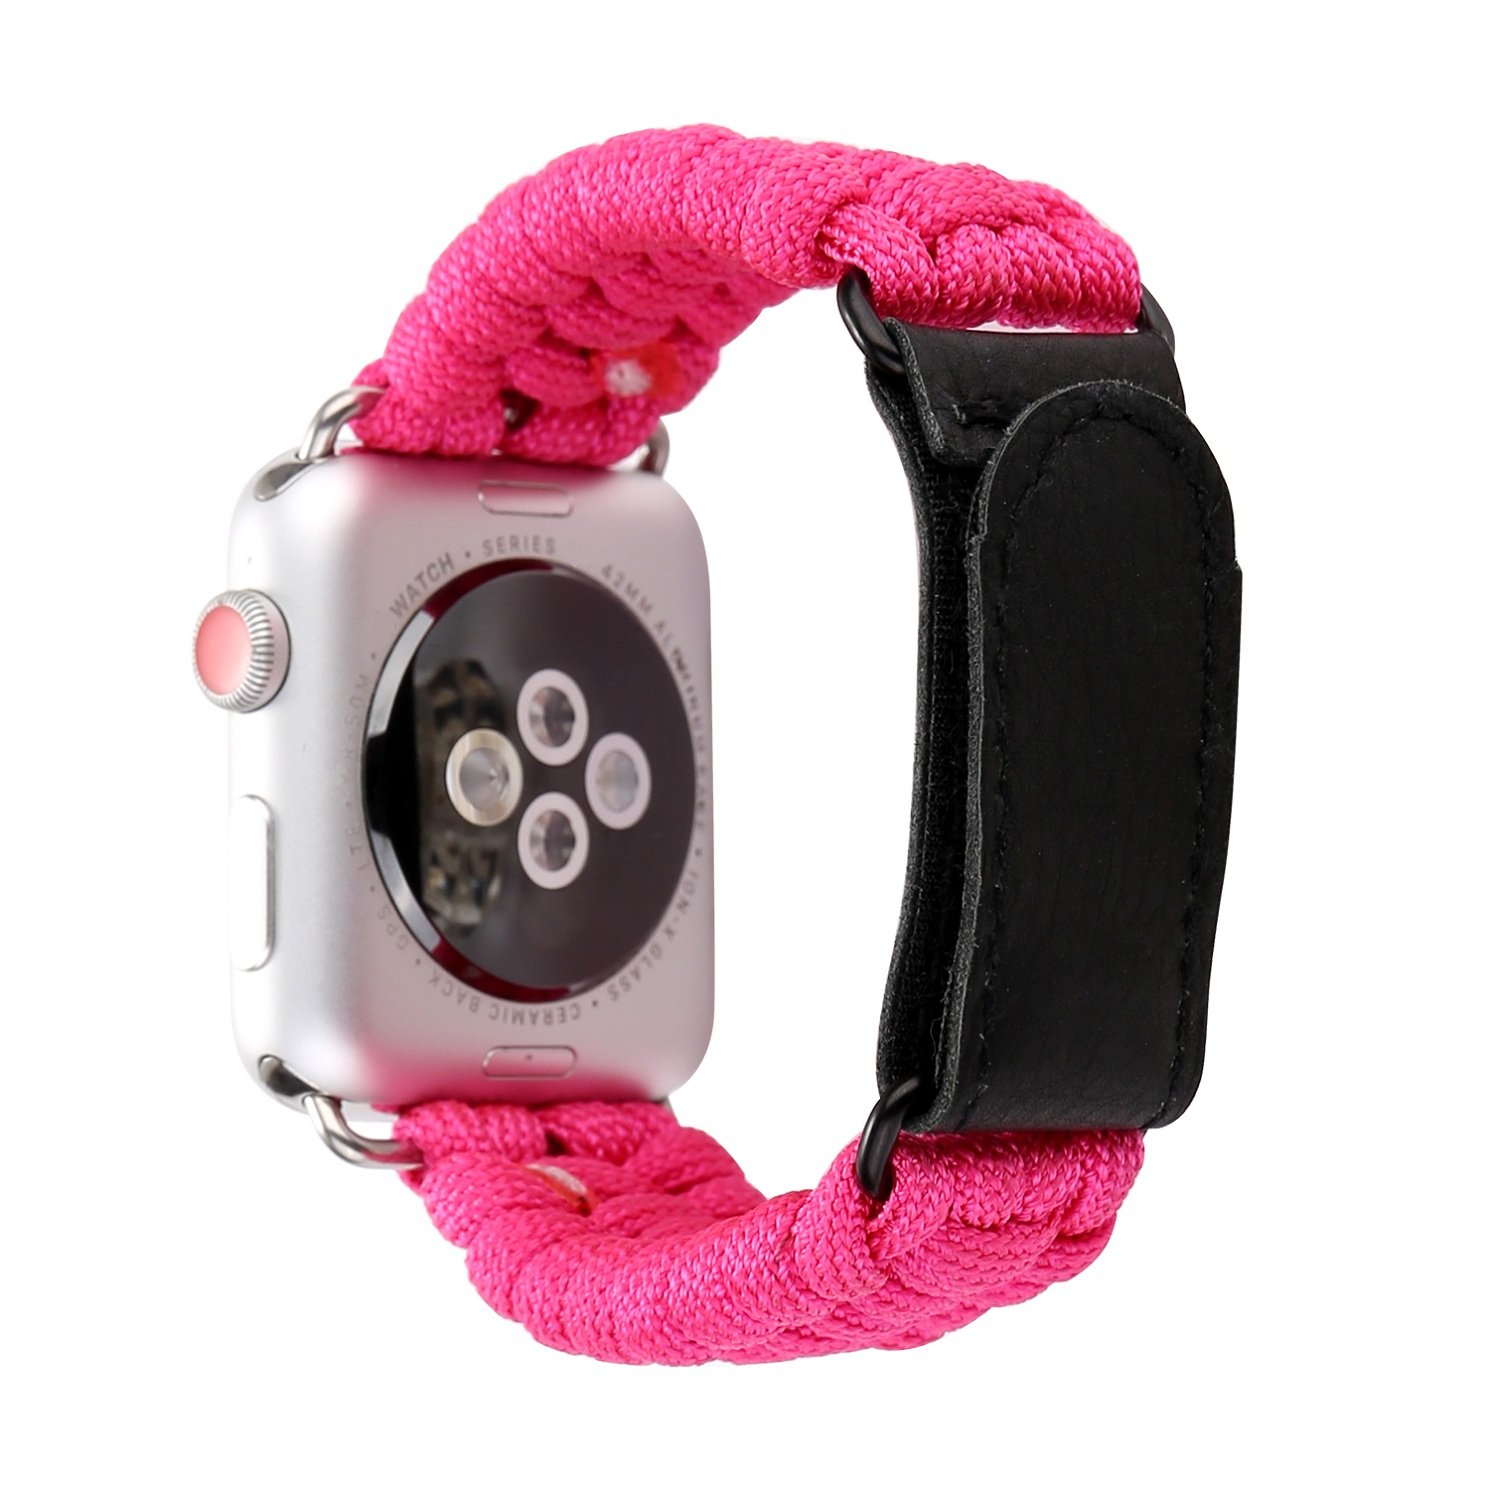 Juzzhou Band For Apple Watch iWatch Series 1/2/3 Sport Edition Braid Weave Plait Textile Replacement Wriststrap Bracelet Watchband Wrist Strap With Metal Adapter Magic Buckle For Woman Girls Red 38mm